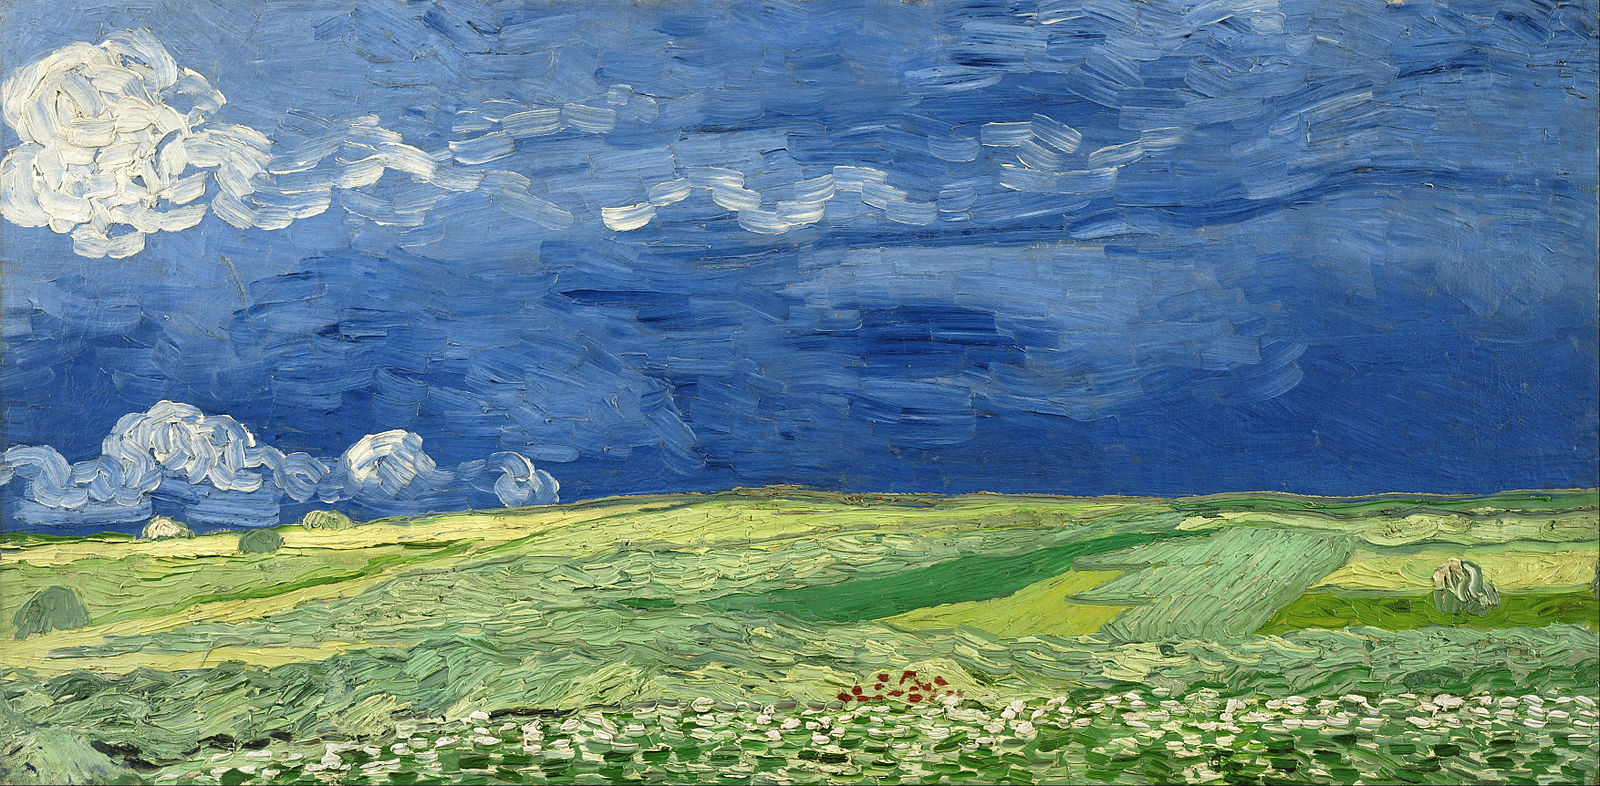 Van Gogh 1890 _Wheatfield_under_thunderclouds_-_Google_Art_Project